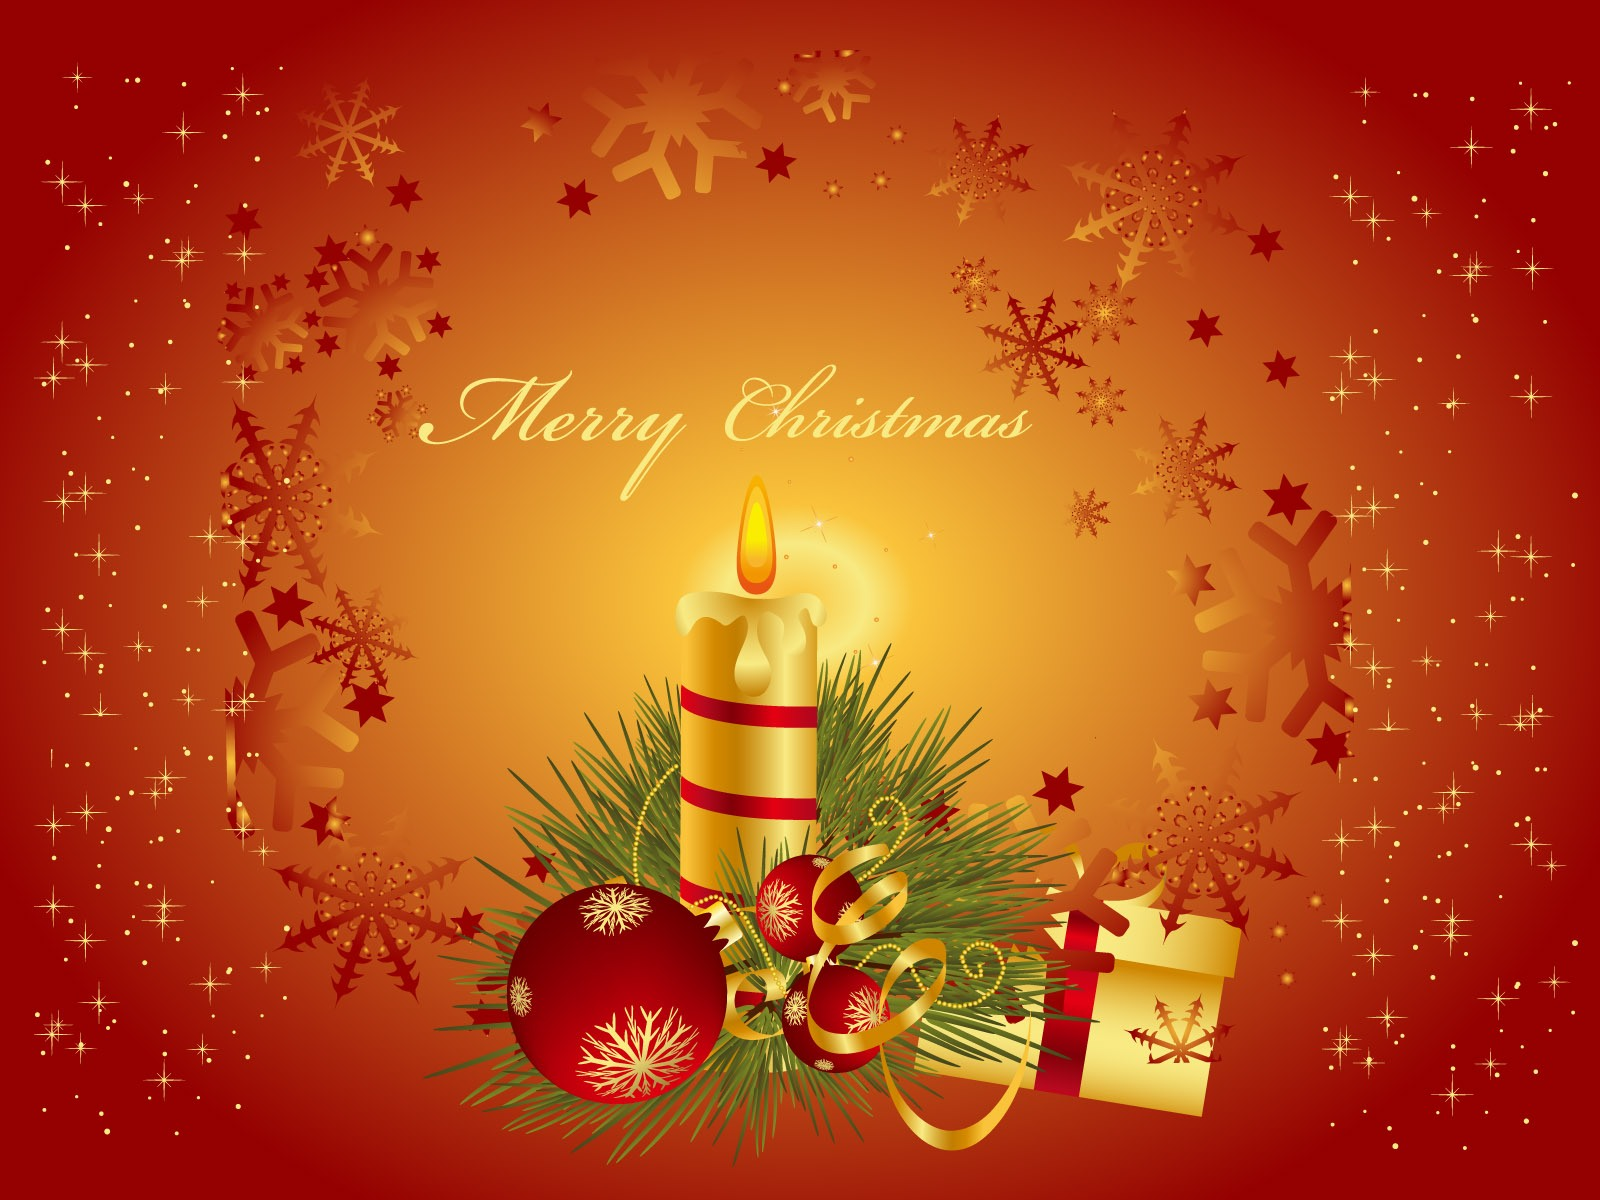 christmas candle wallpapers download wallpapers christmas candle 1600x1200